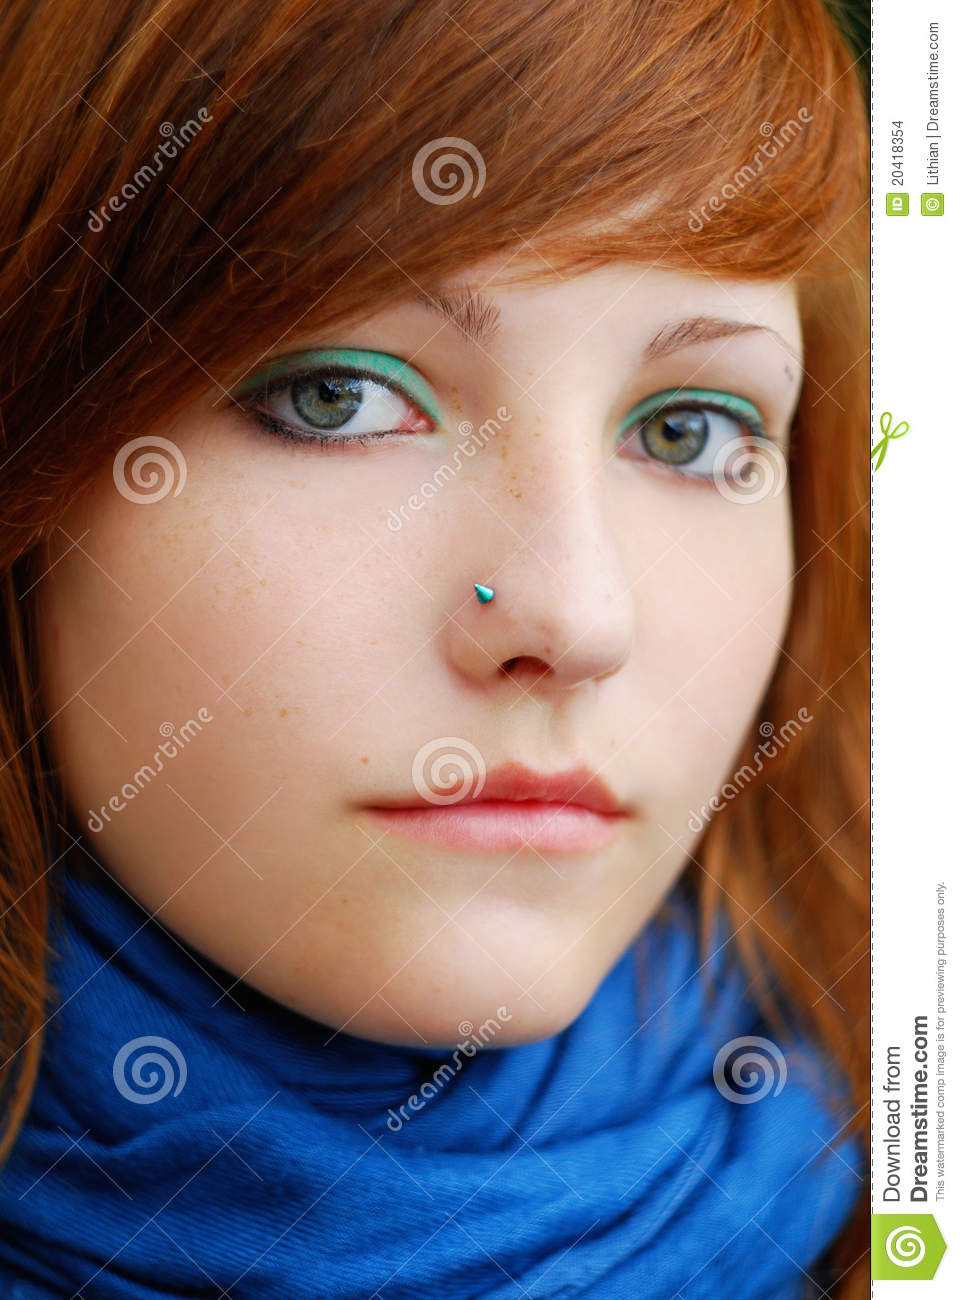 Colorful Teen Stock Image Image Of Lipstick Portrait: Colorful Redhead Teen With Attitude. Stock Images